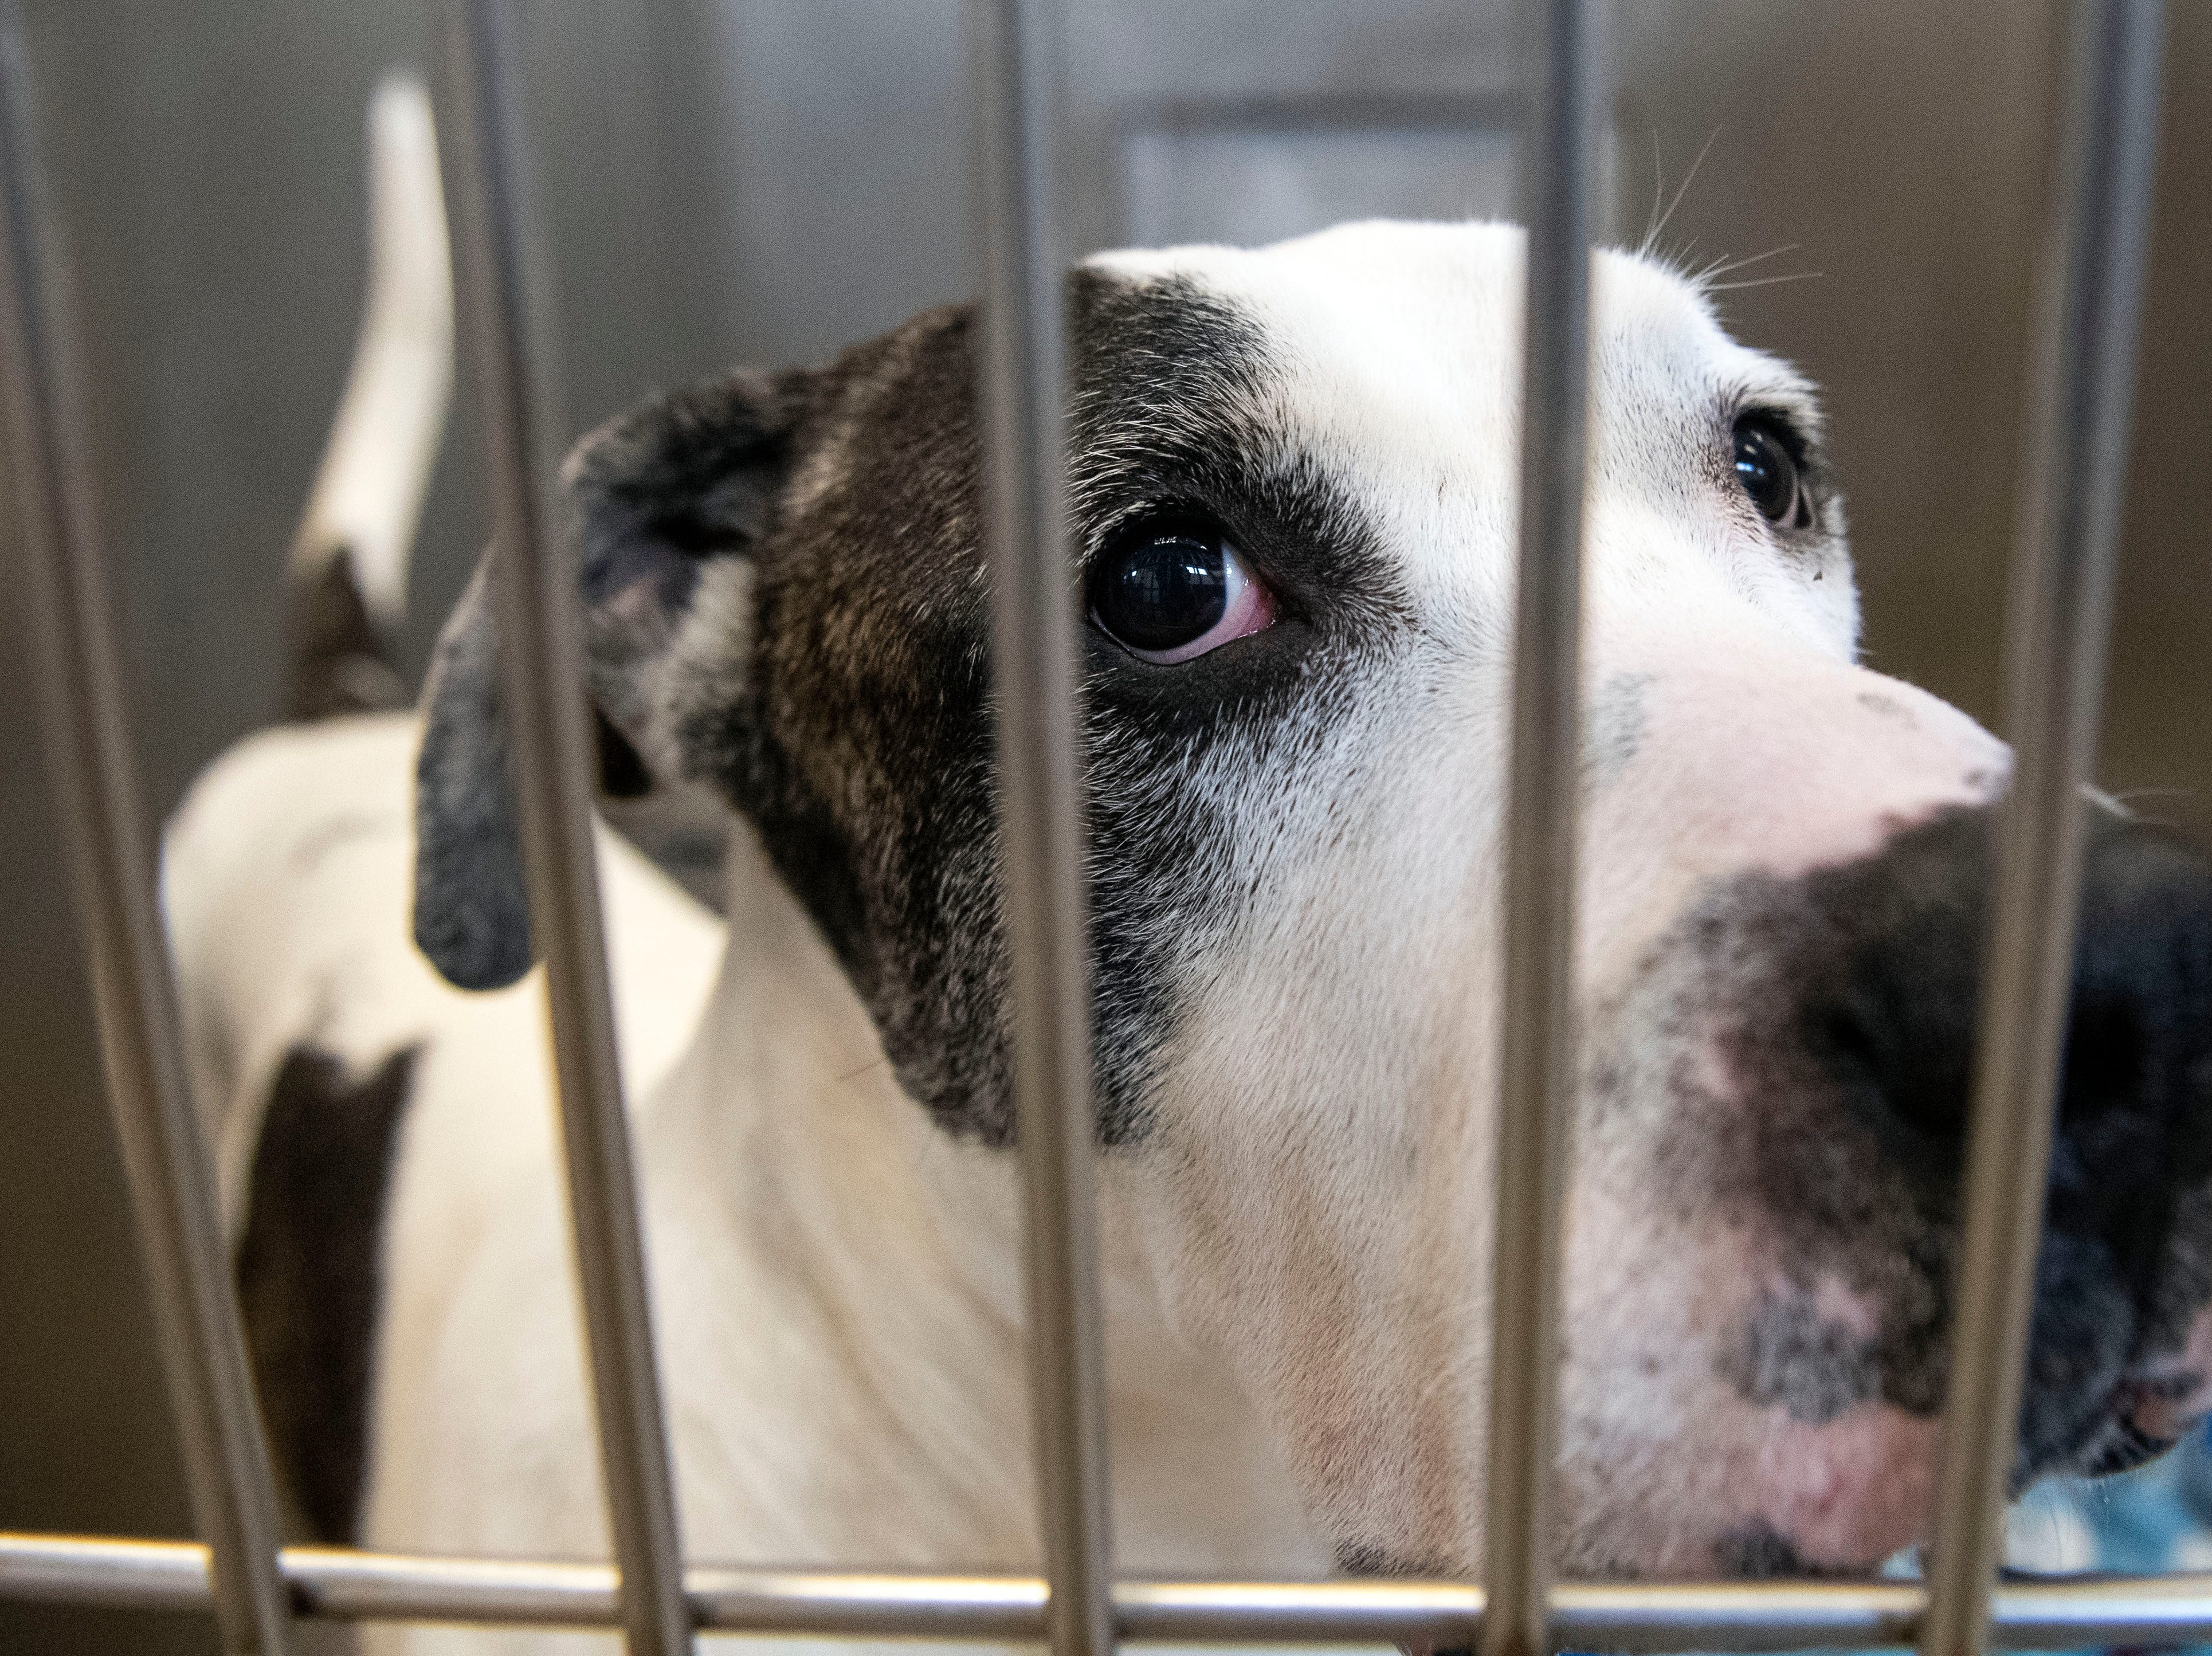 Jake, a 7-year old American Bull dog, at the York County SPCA, Thursday, Feb. 7, 2019. Jake was brought into the shelter because his owner was injured and could no longer care for him.